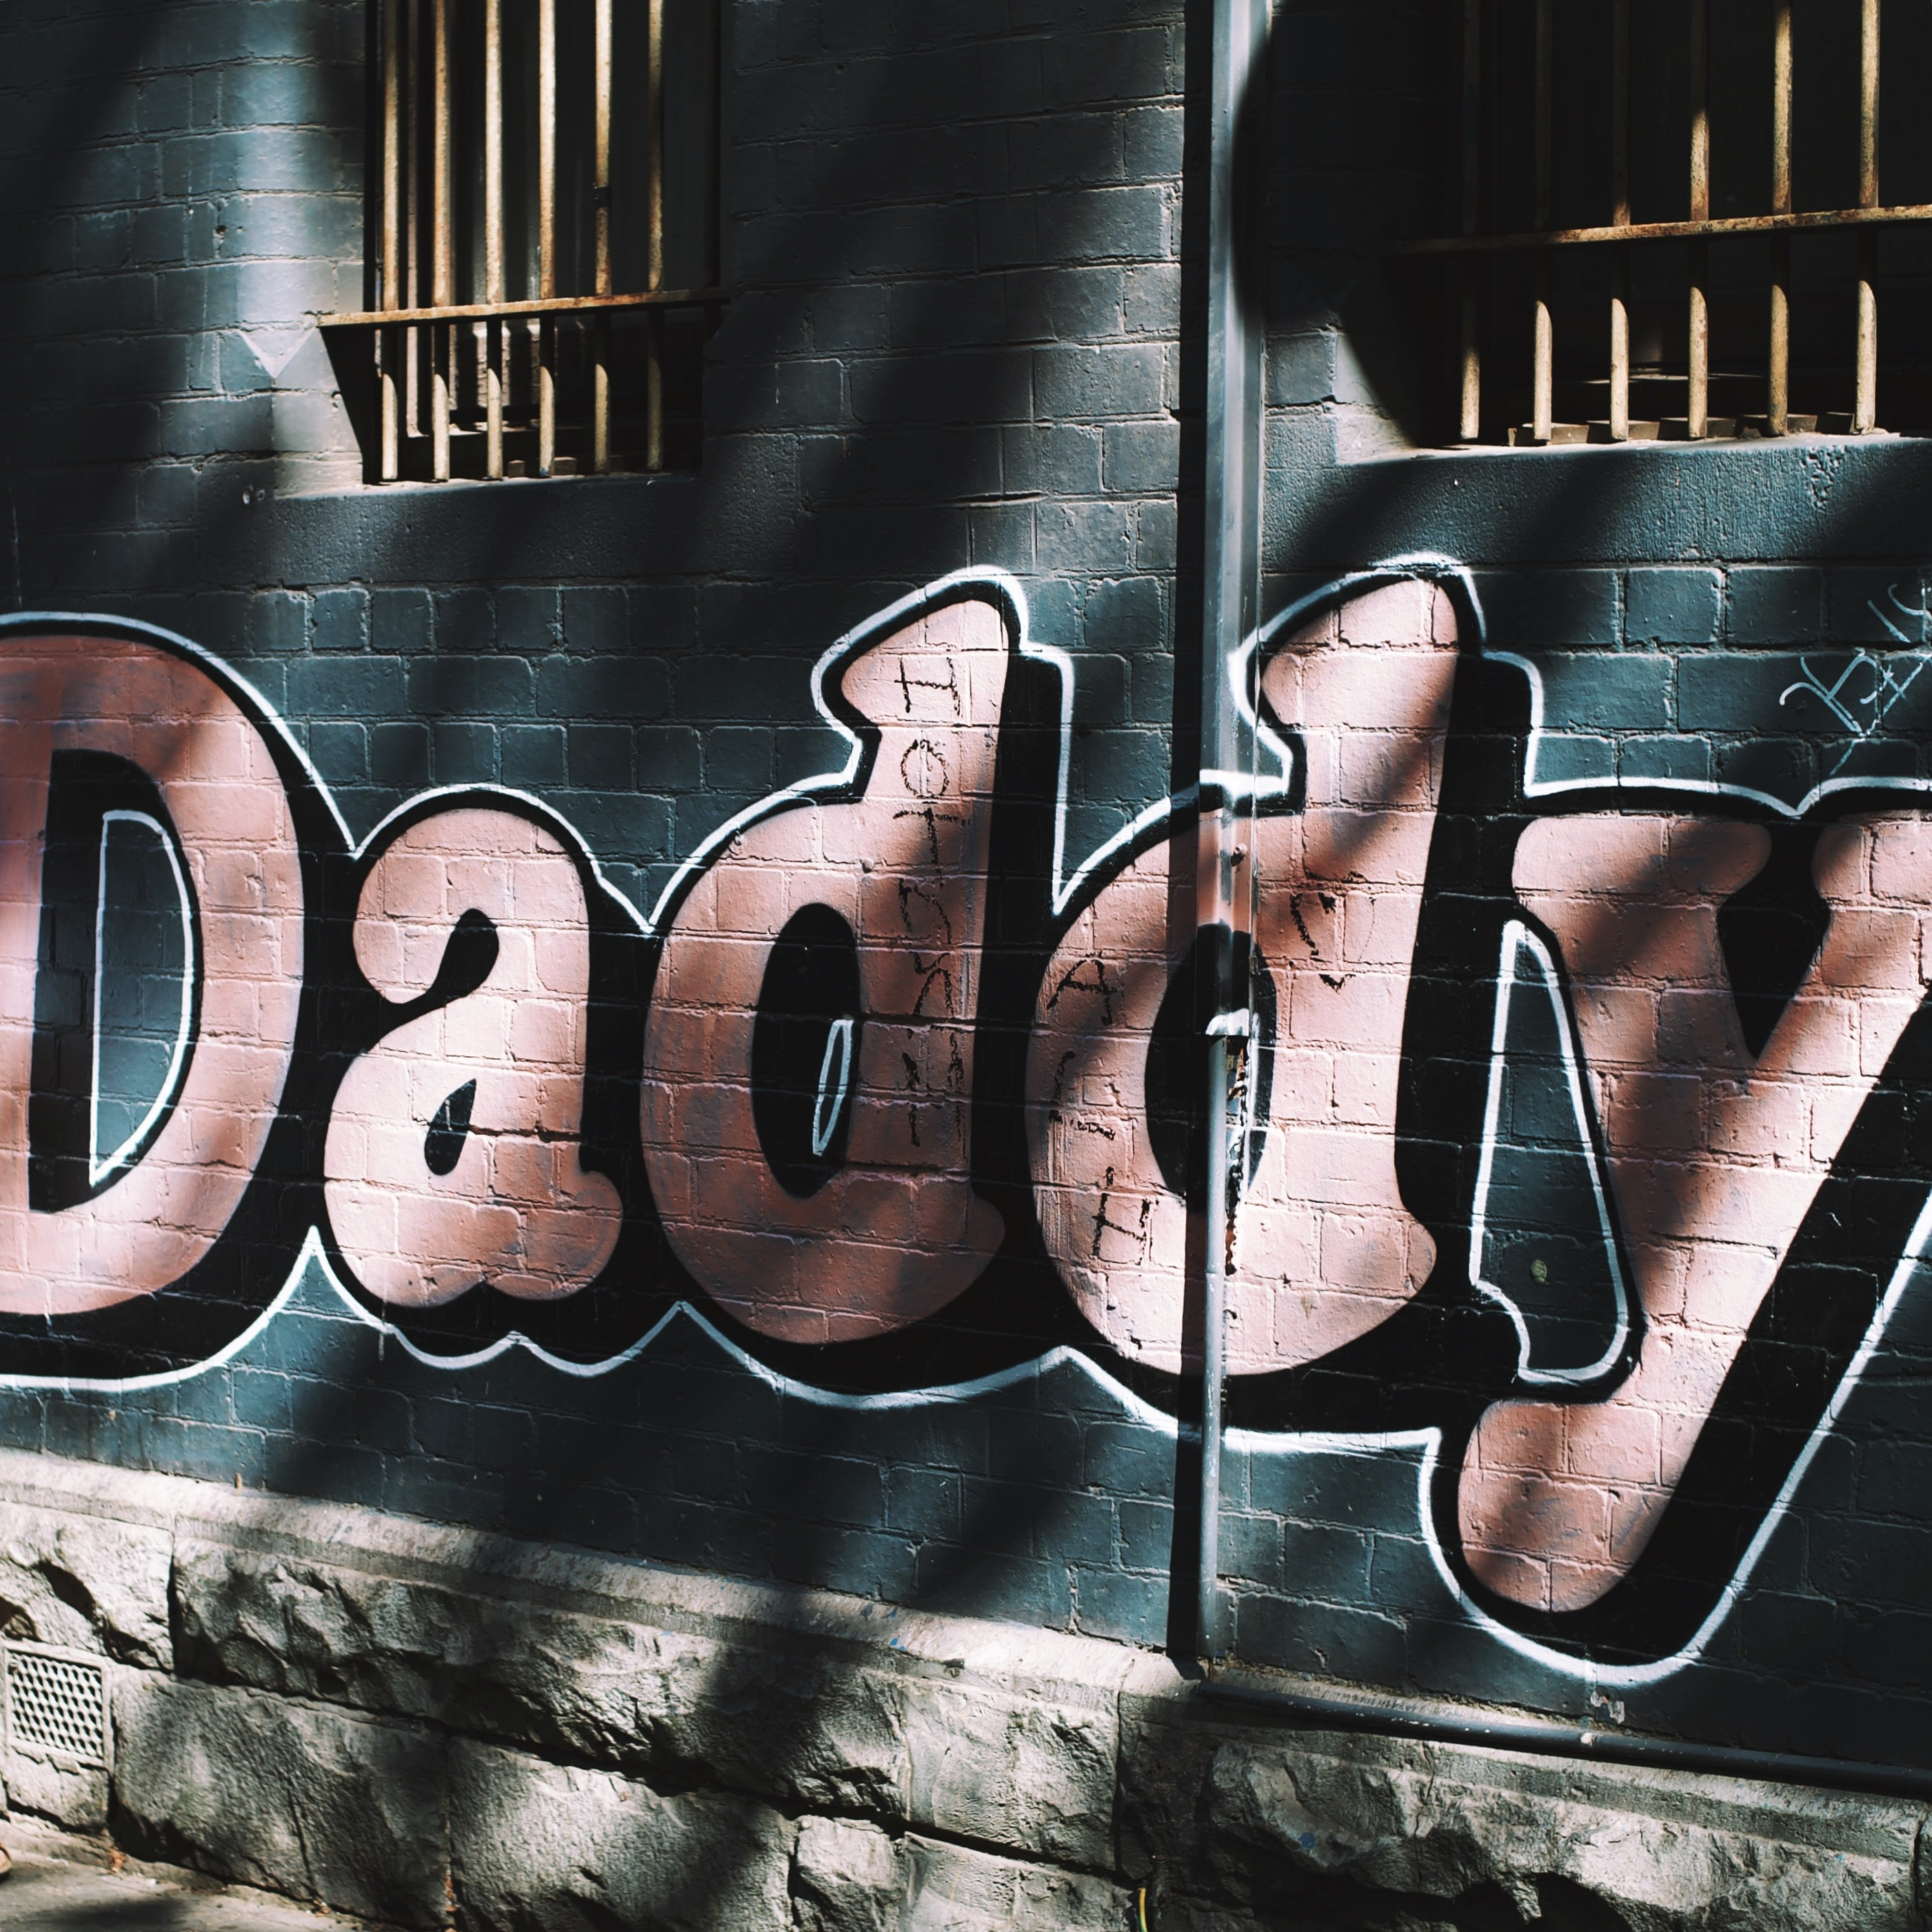 Daddy wall painted at daytime